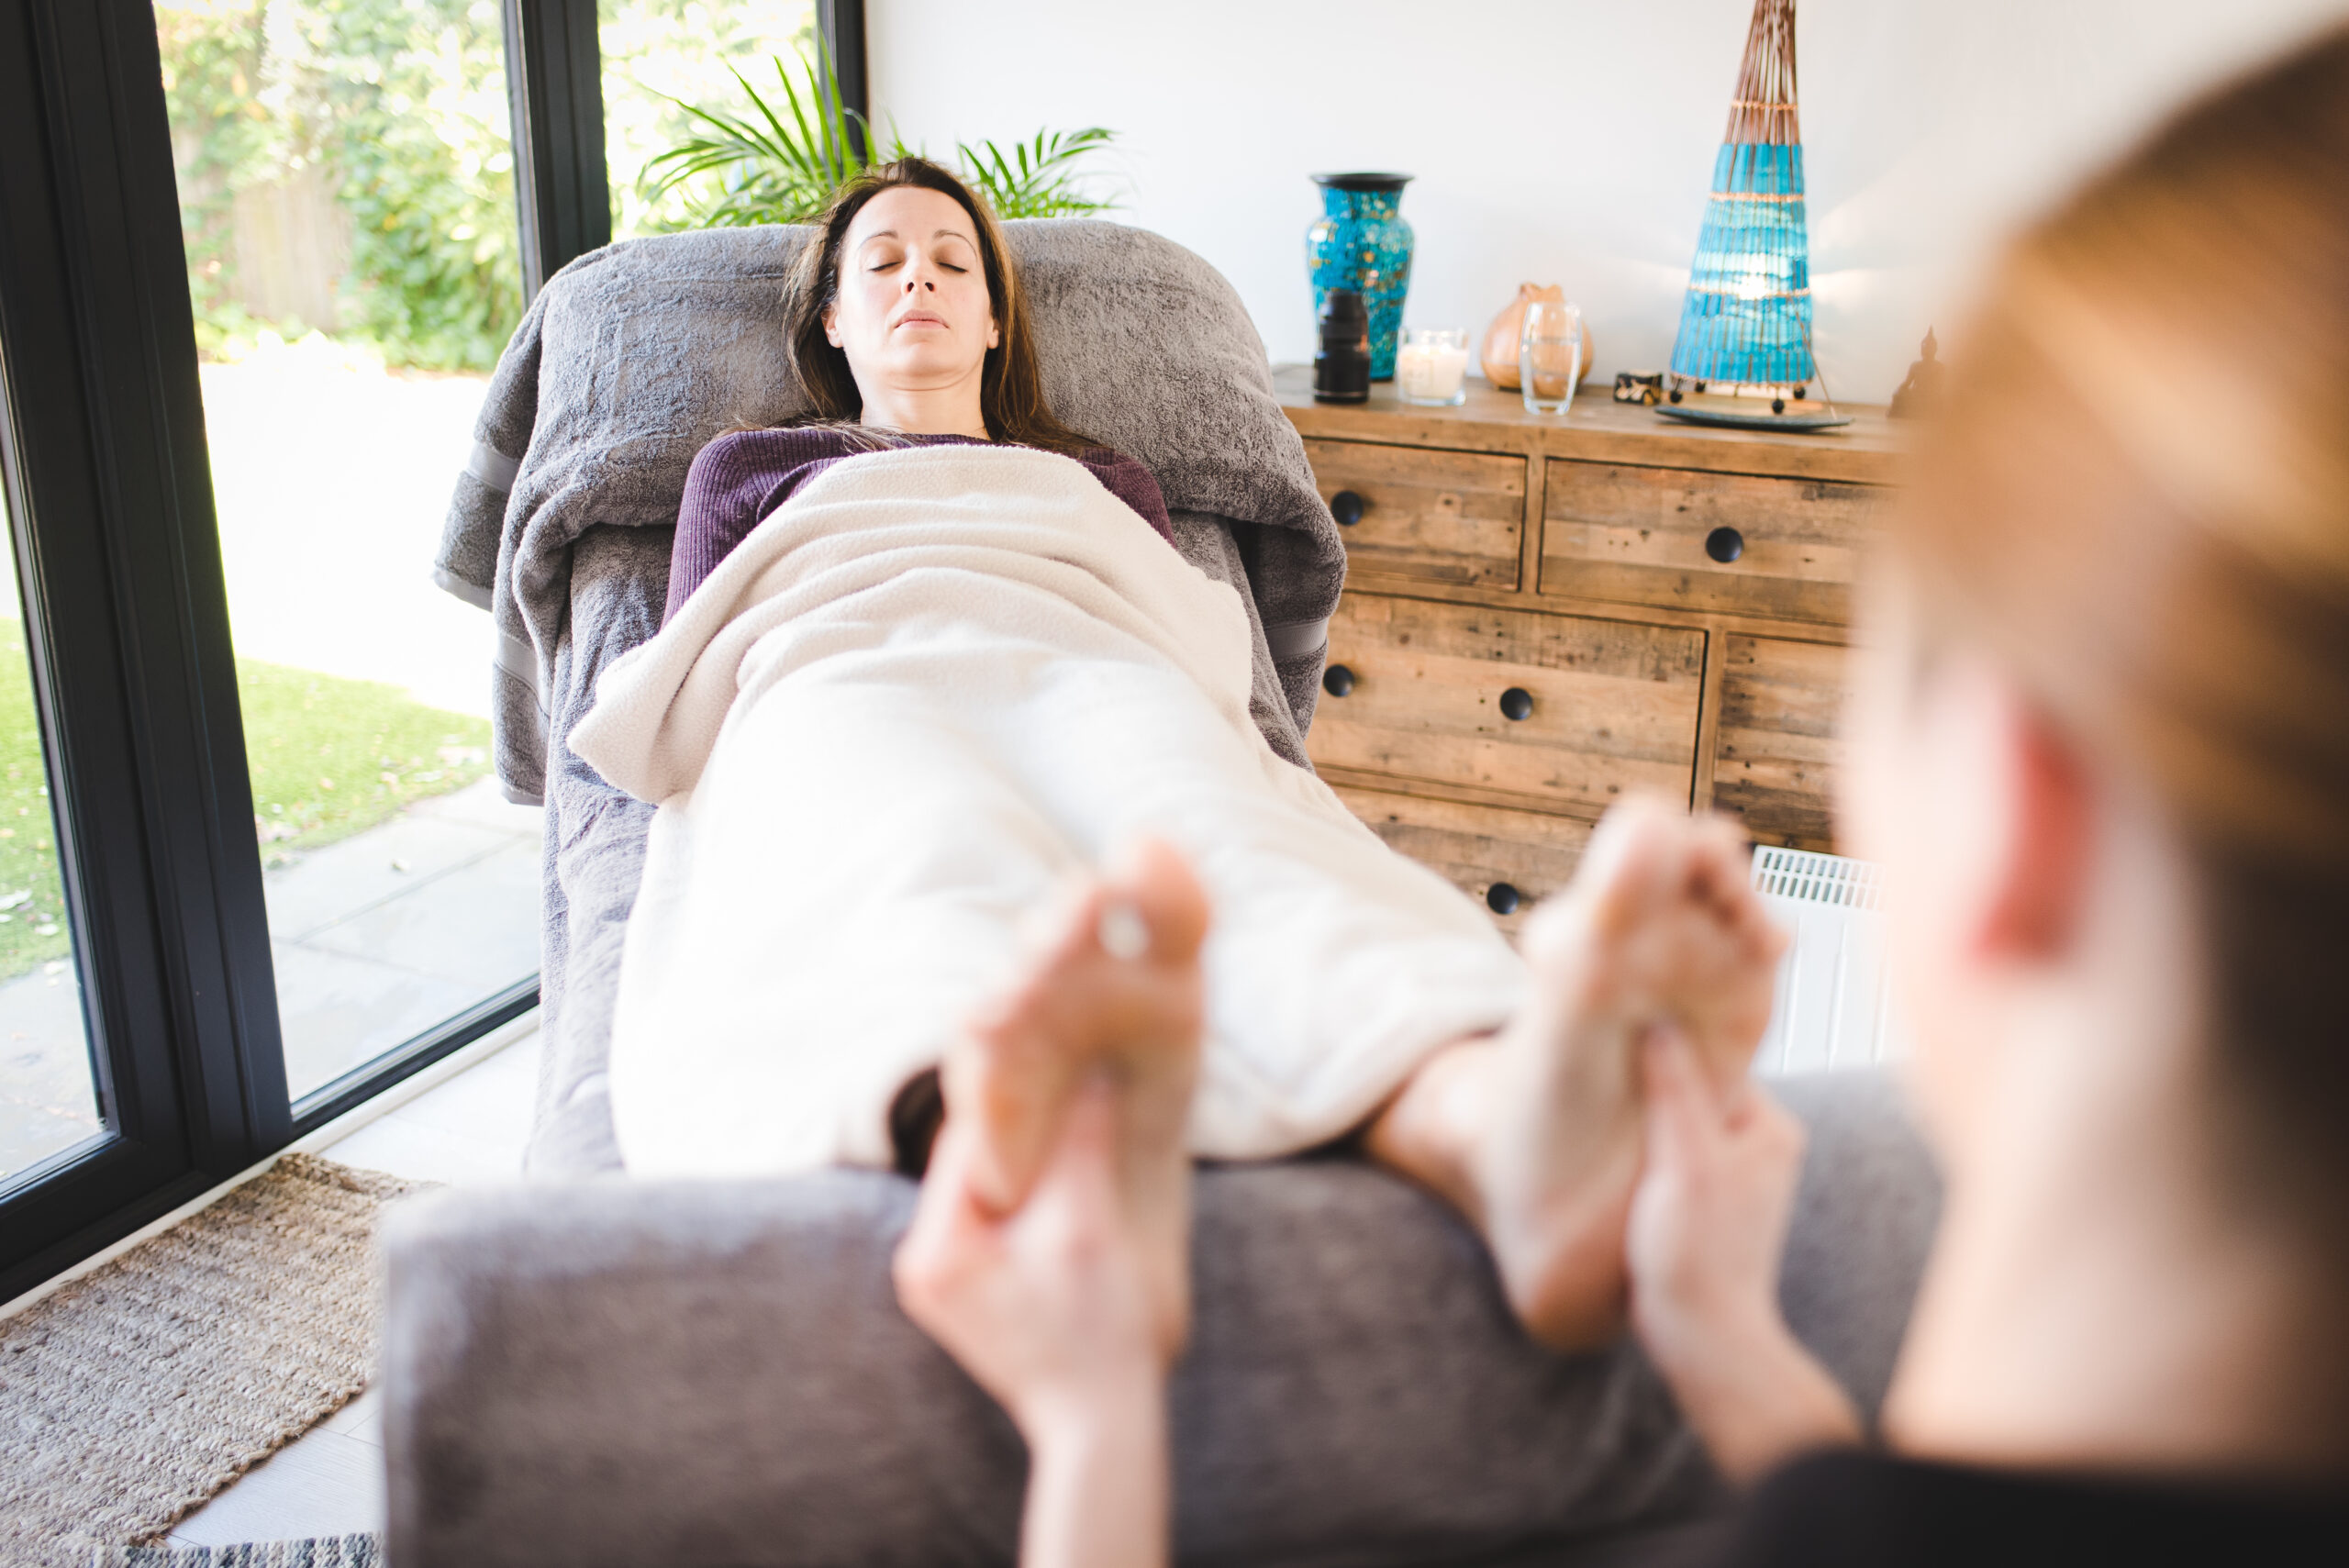 10 Reasons to Have Reflexology